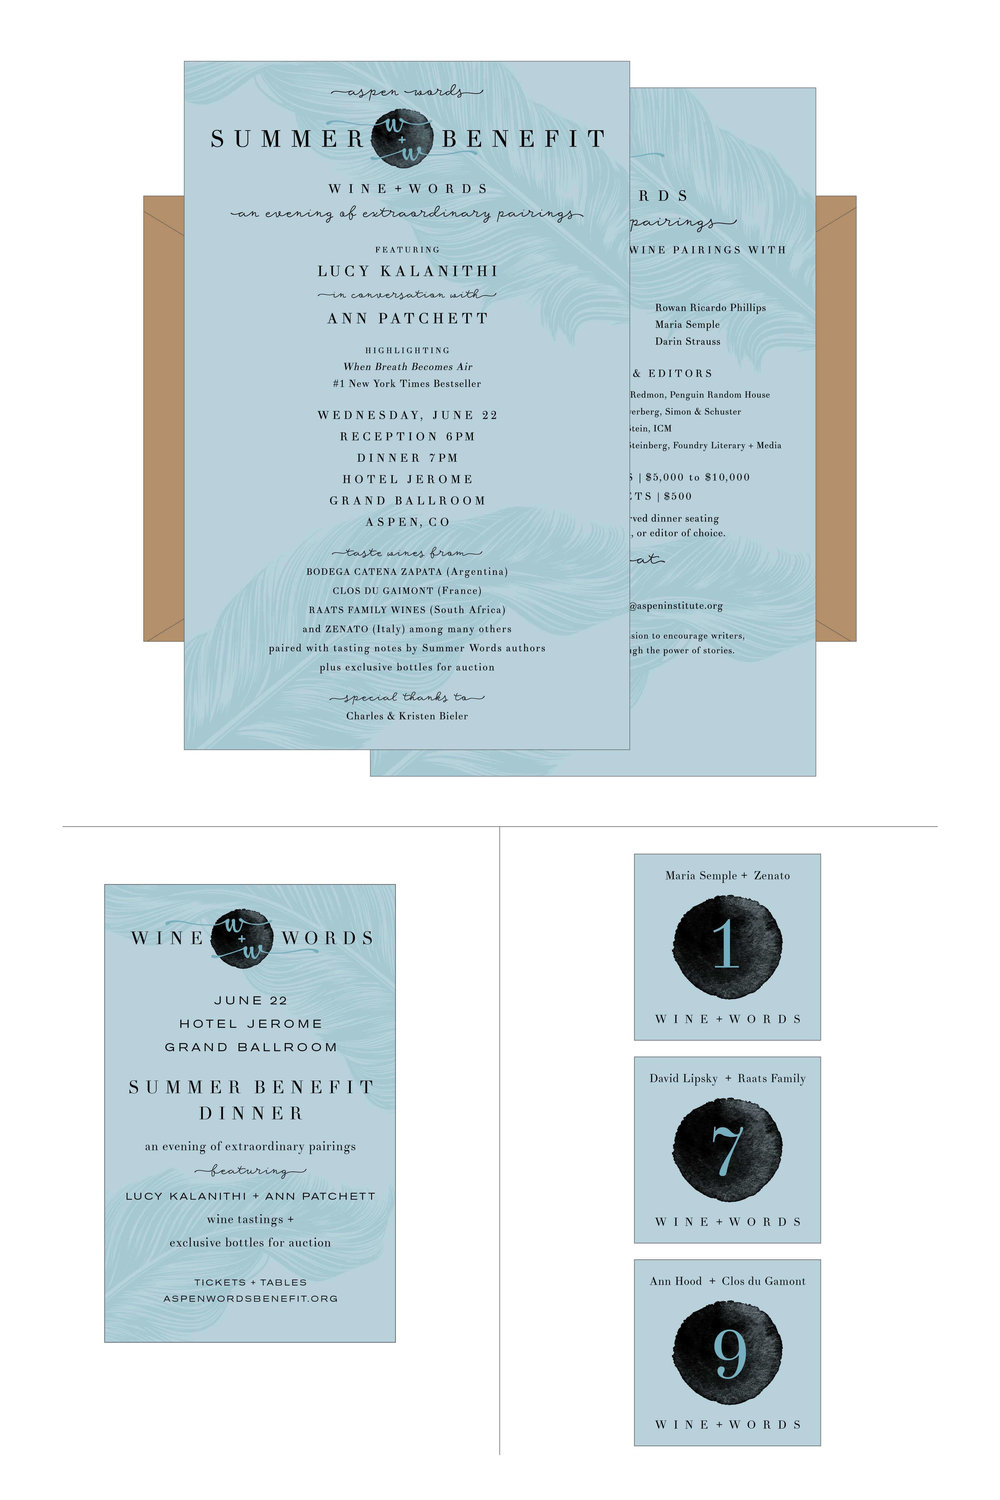 SummerBenefit-collateral-items.jpg